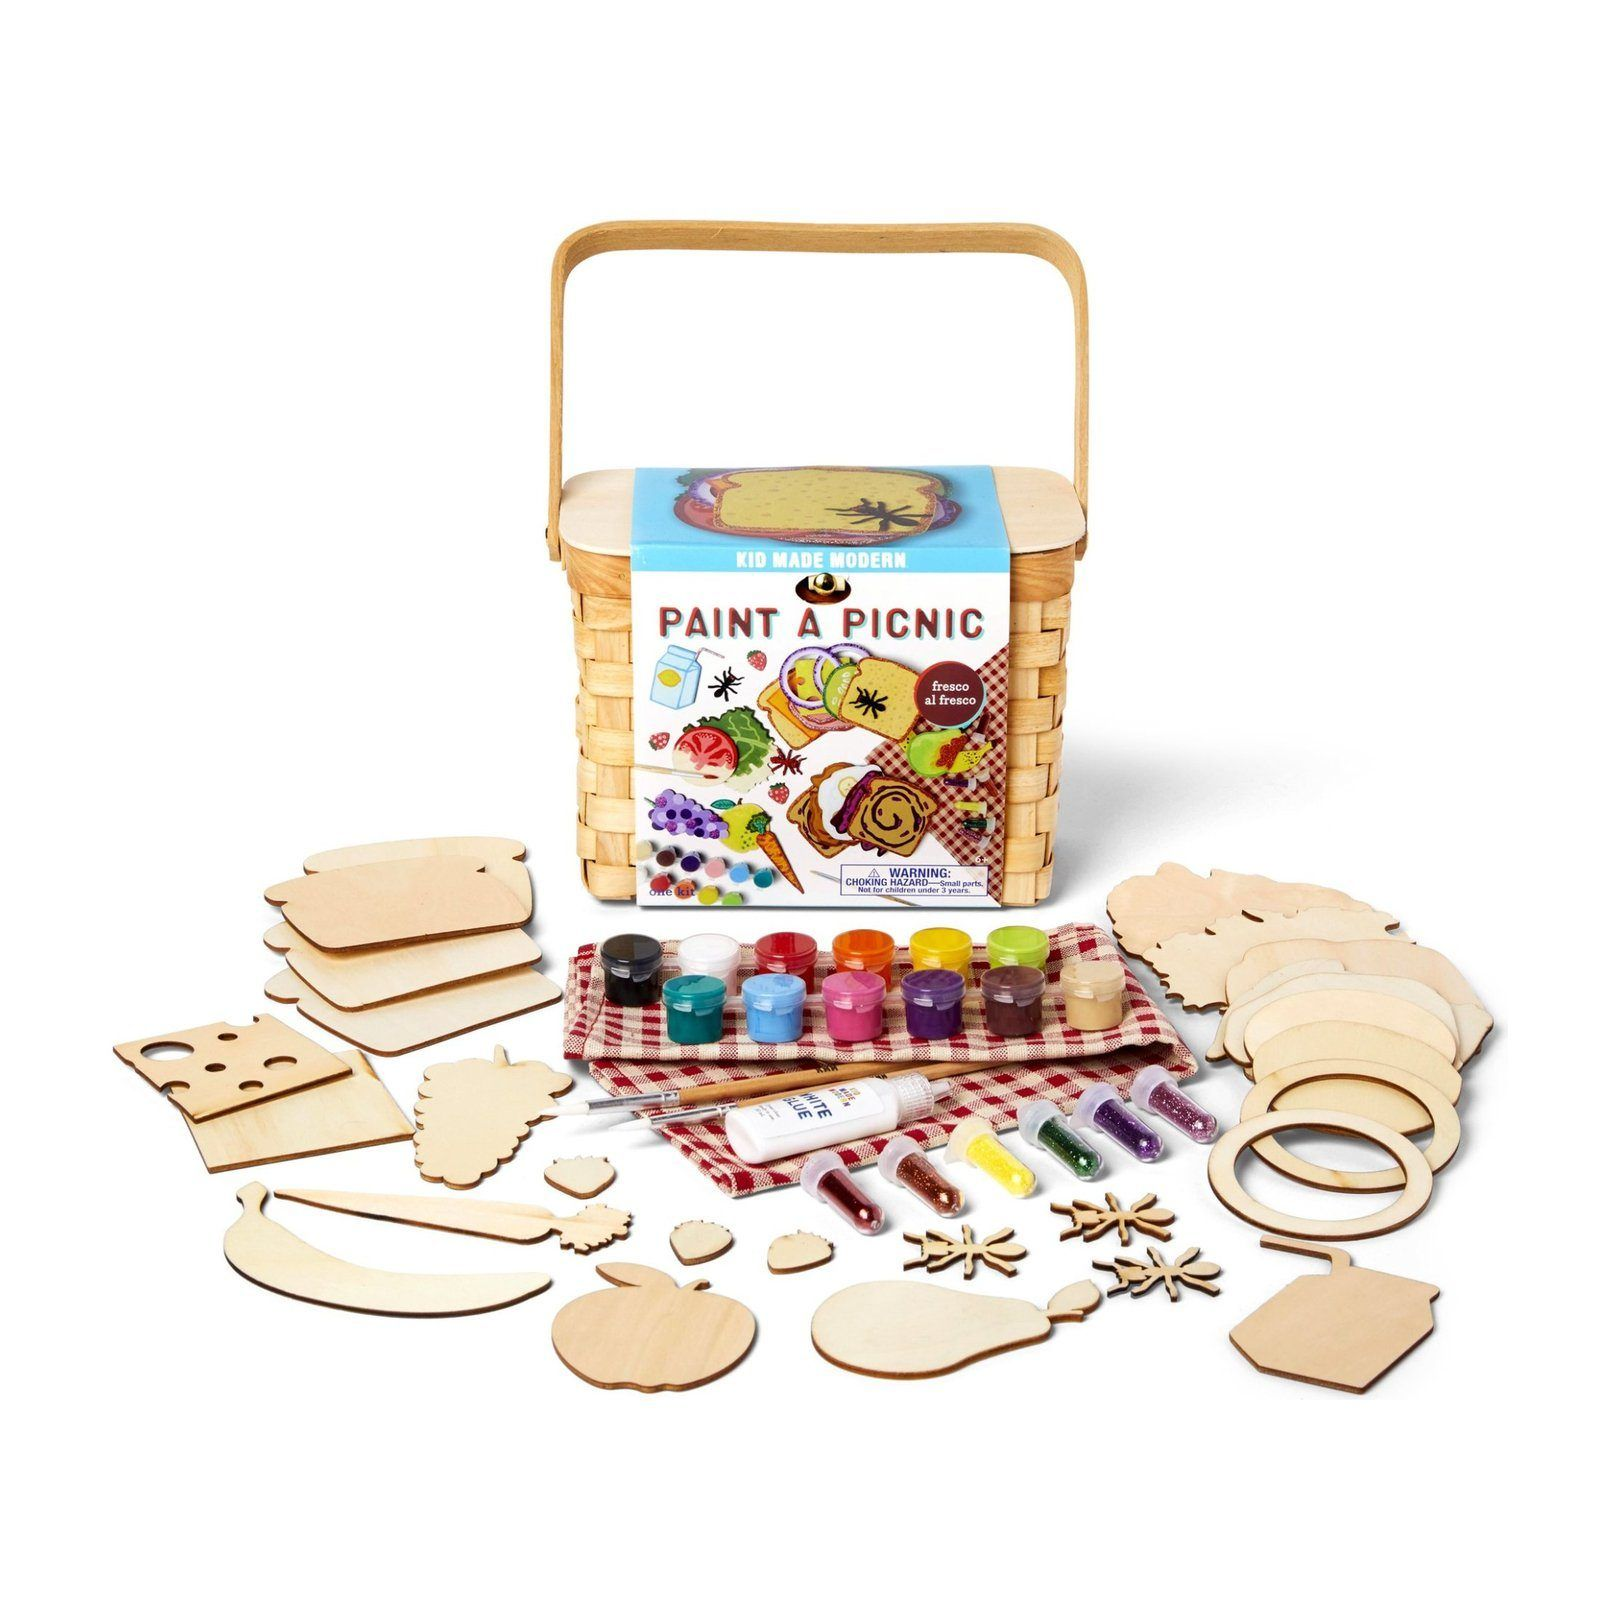 Paint A Picnic Craft Kit Craft Kits For Kids Arts And Crafts For Kids Craft Kits